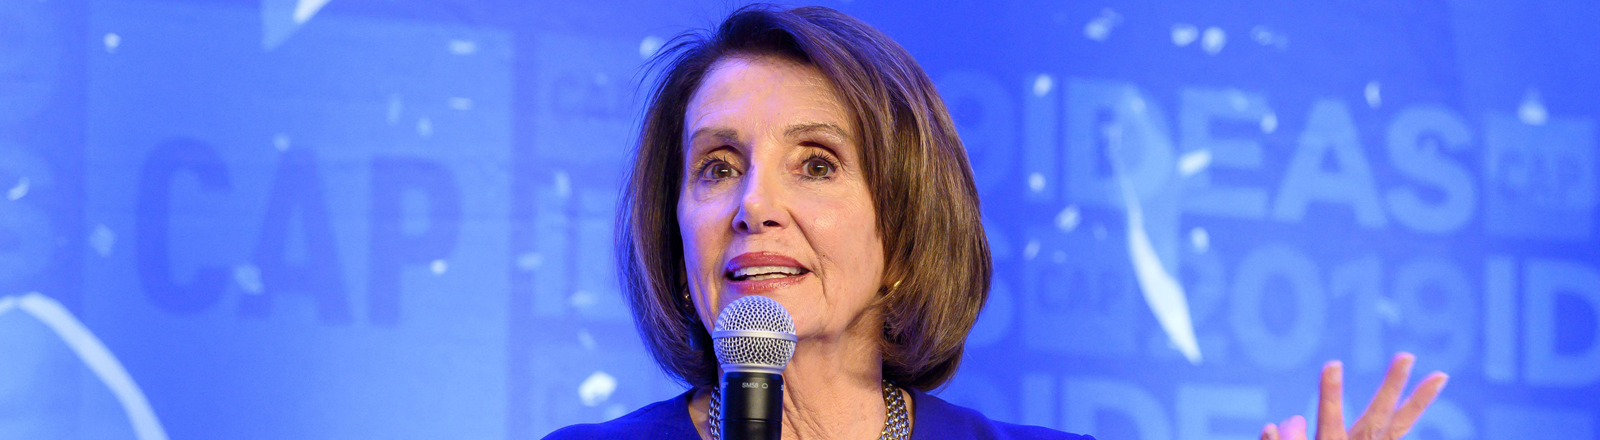 Nancy Pelosi beim Center for American Progress CAP am 22. Mai 2019